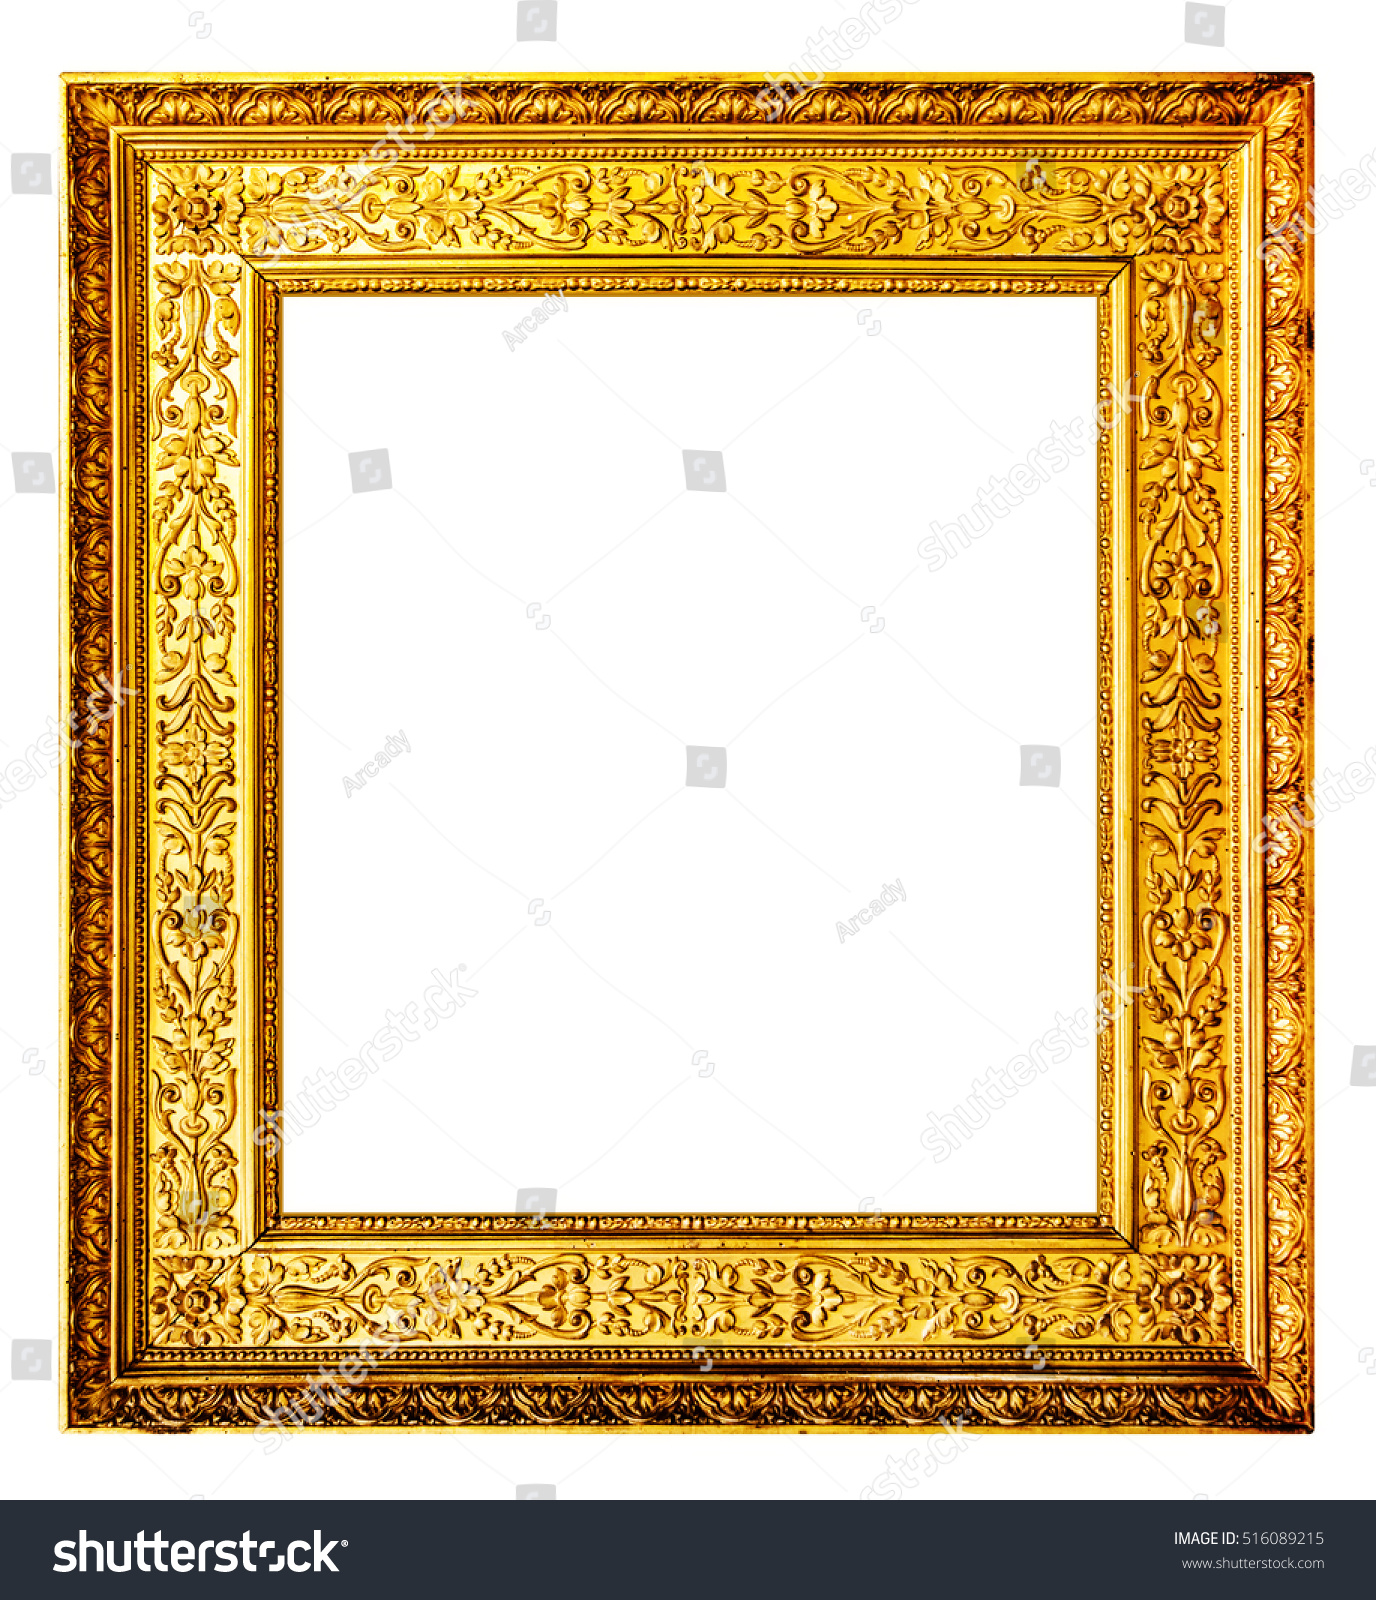 Old Gold Frame Photo Isolated On Stockfoto (Jetzt bearbeiten ...